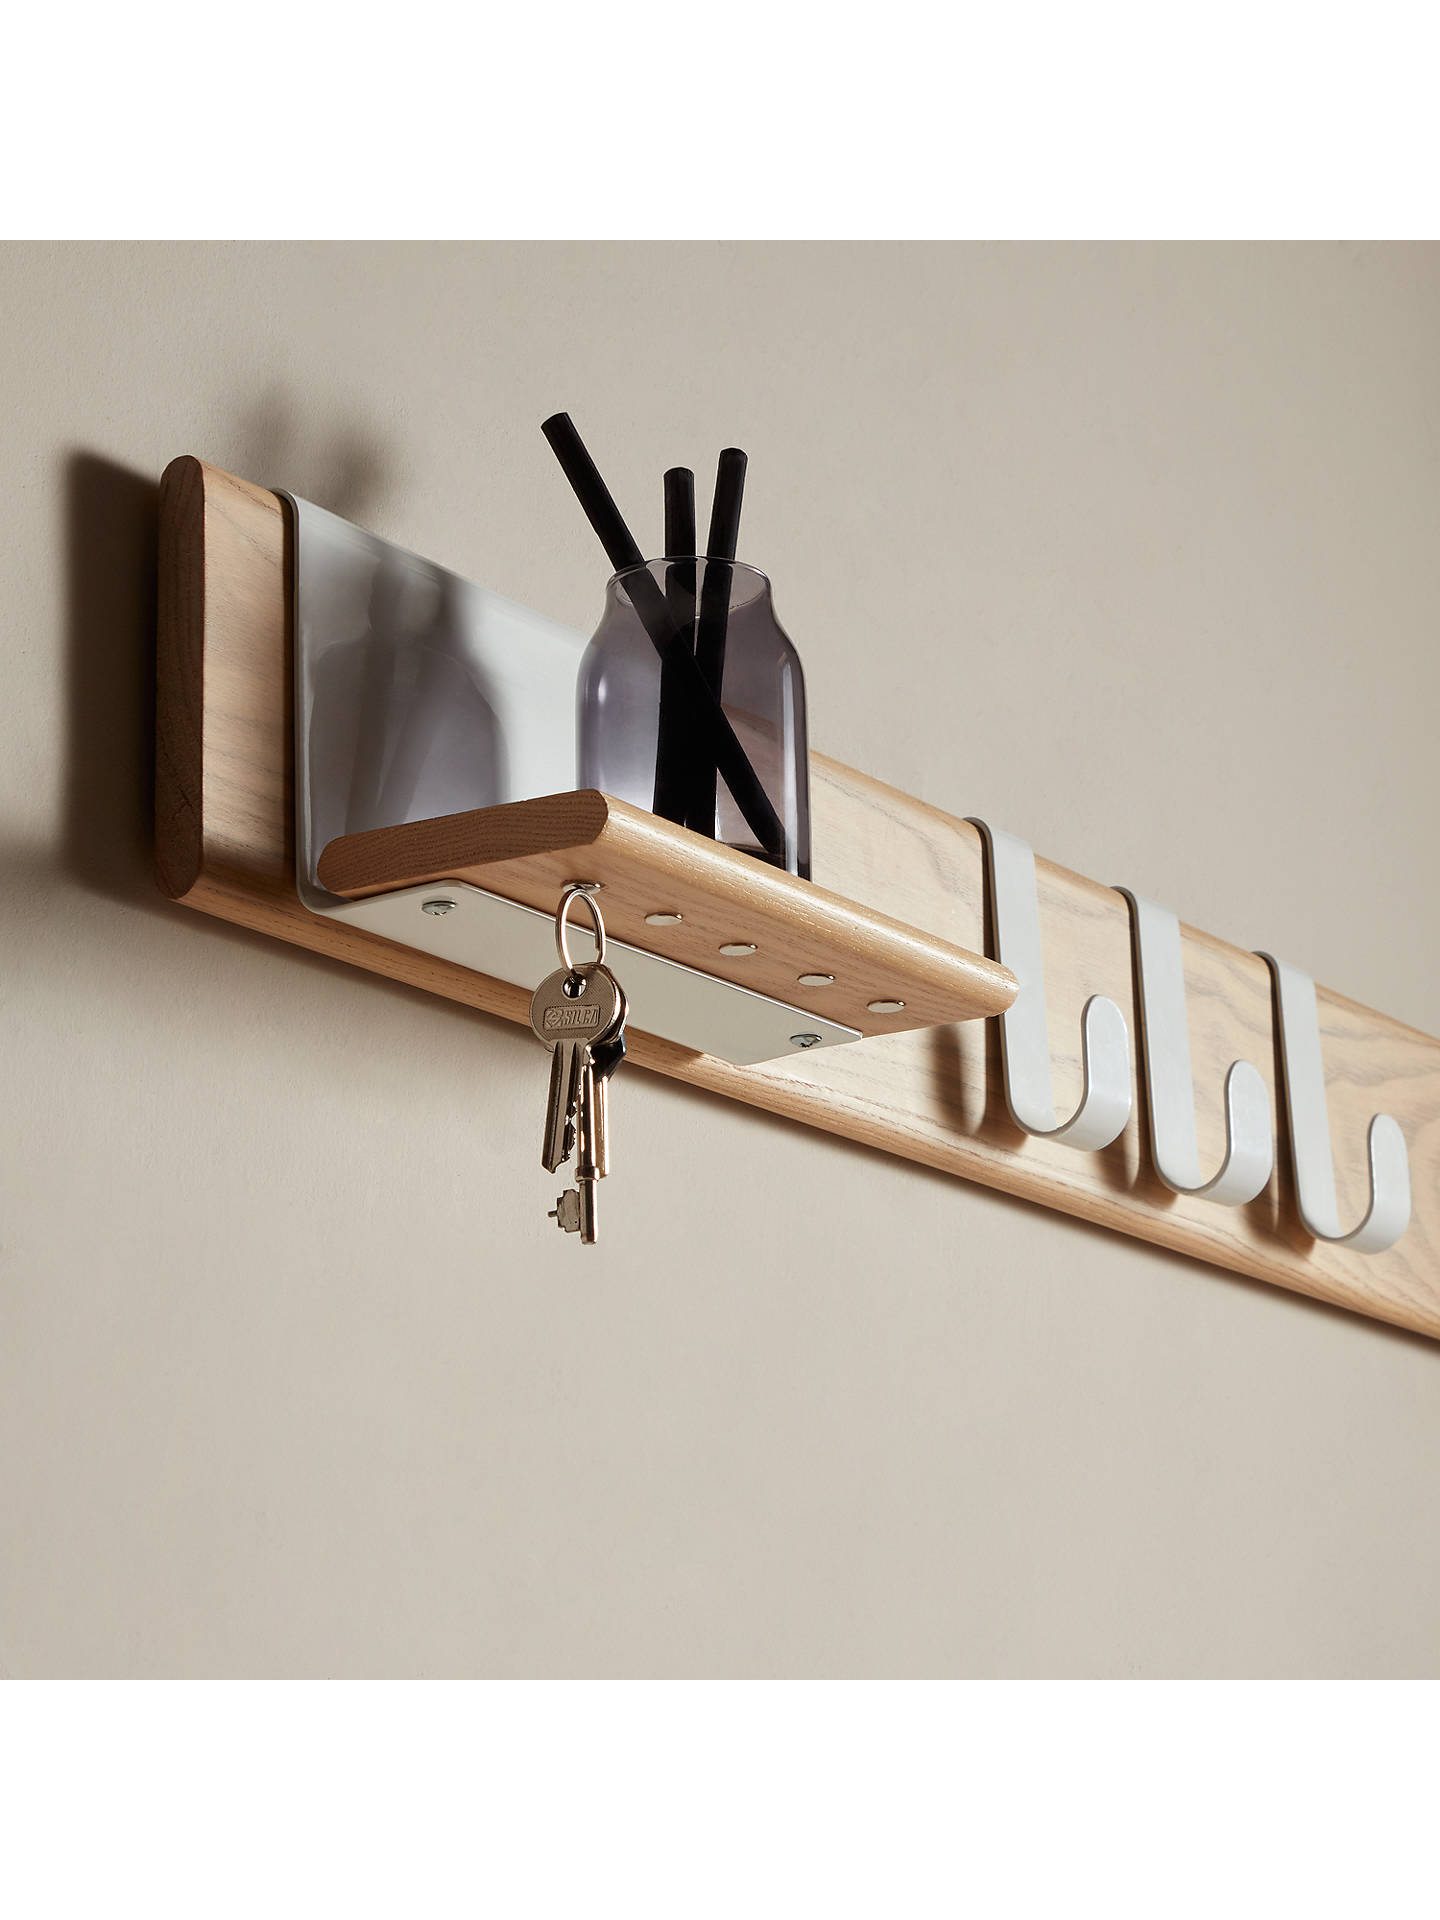 Design Project By John Lewis No 015 Shelf And Key Holder Online At Johnlewis